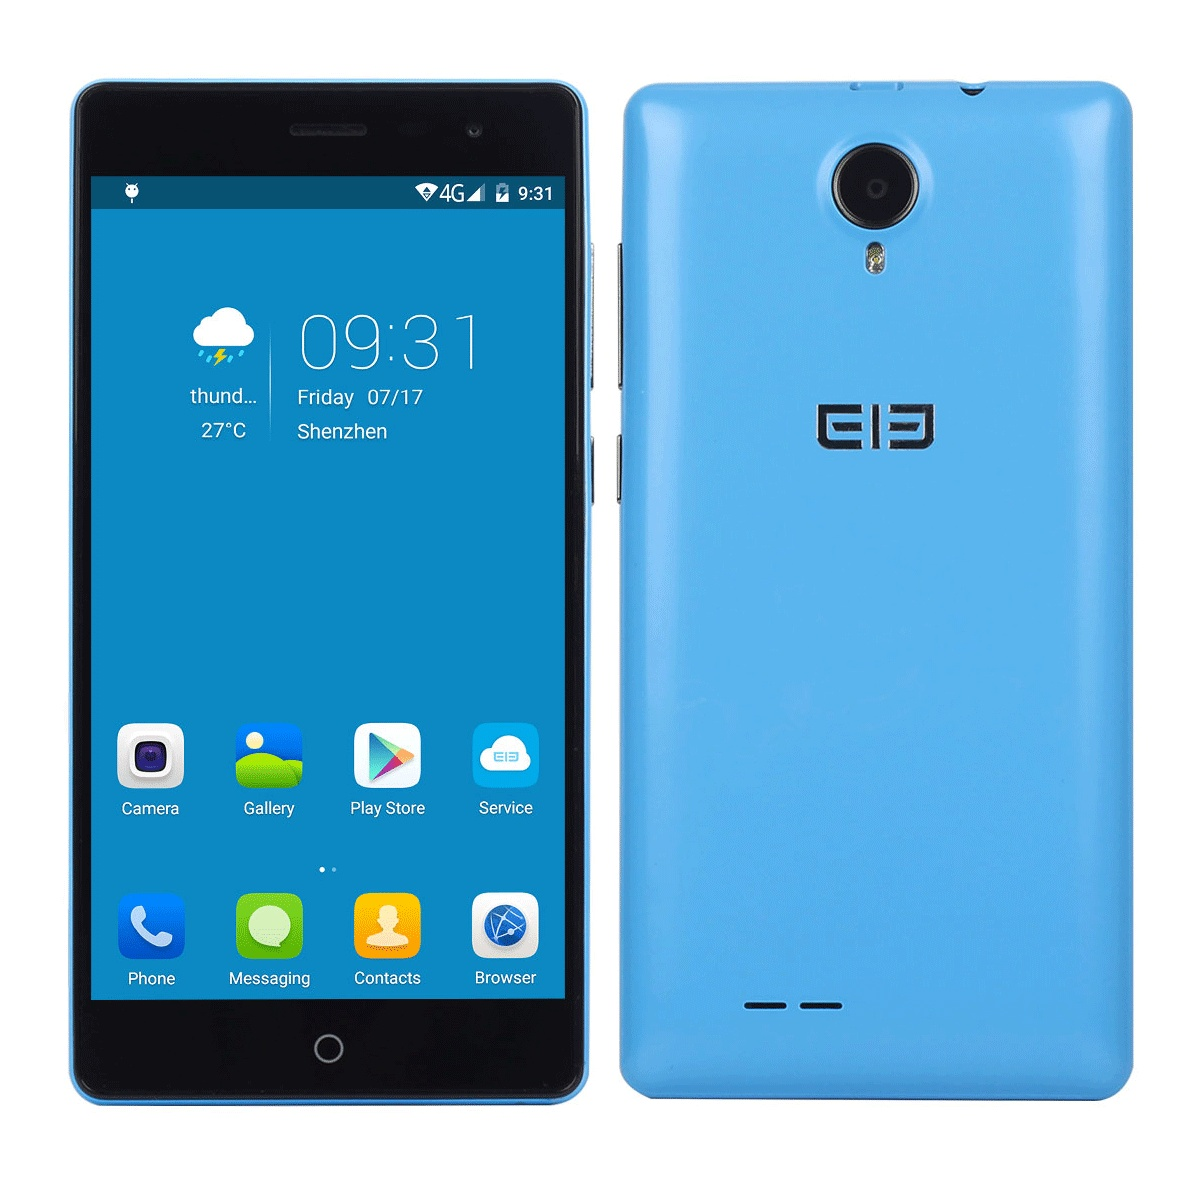 Elephone Trunk Smartphone 4G 64bit Snapdragon 410 Android 5.1 5.0 Inch 2GB 16GB Blue